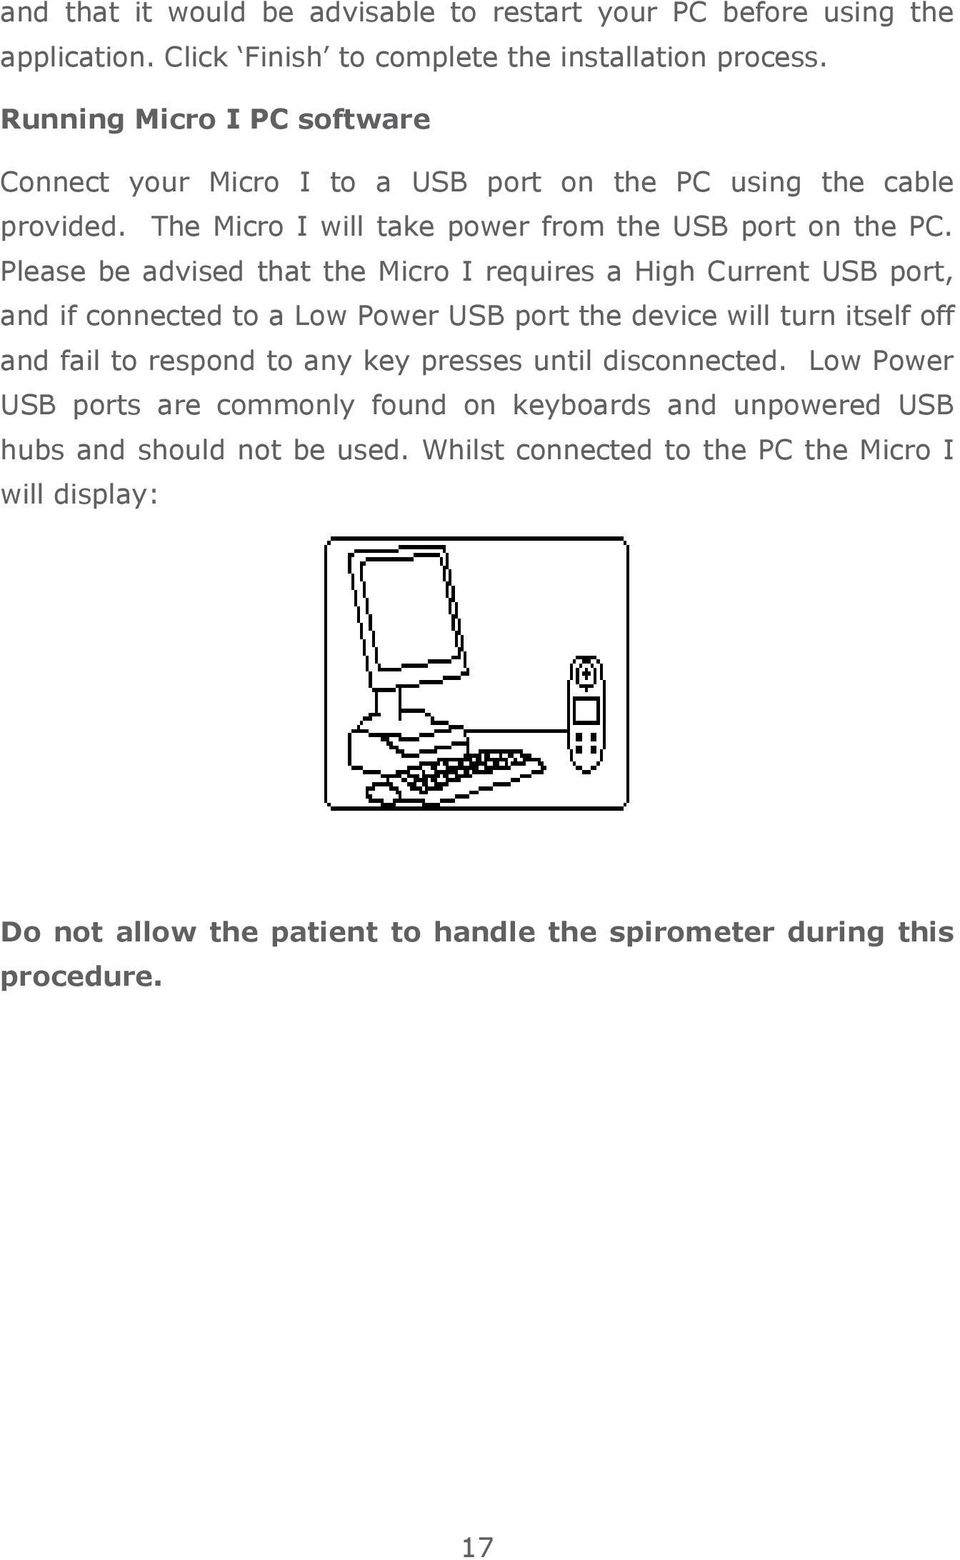 Please be advised that the Micro I requires a High Current USB port, and if connected to a Low Power USB port the device will turn itself off and fail to respond to any key